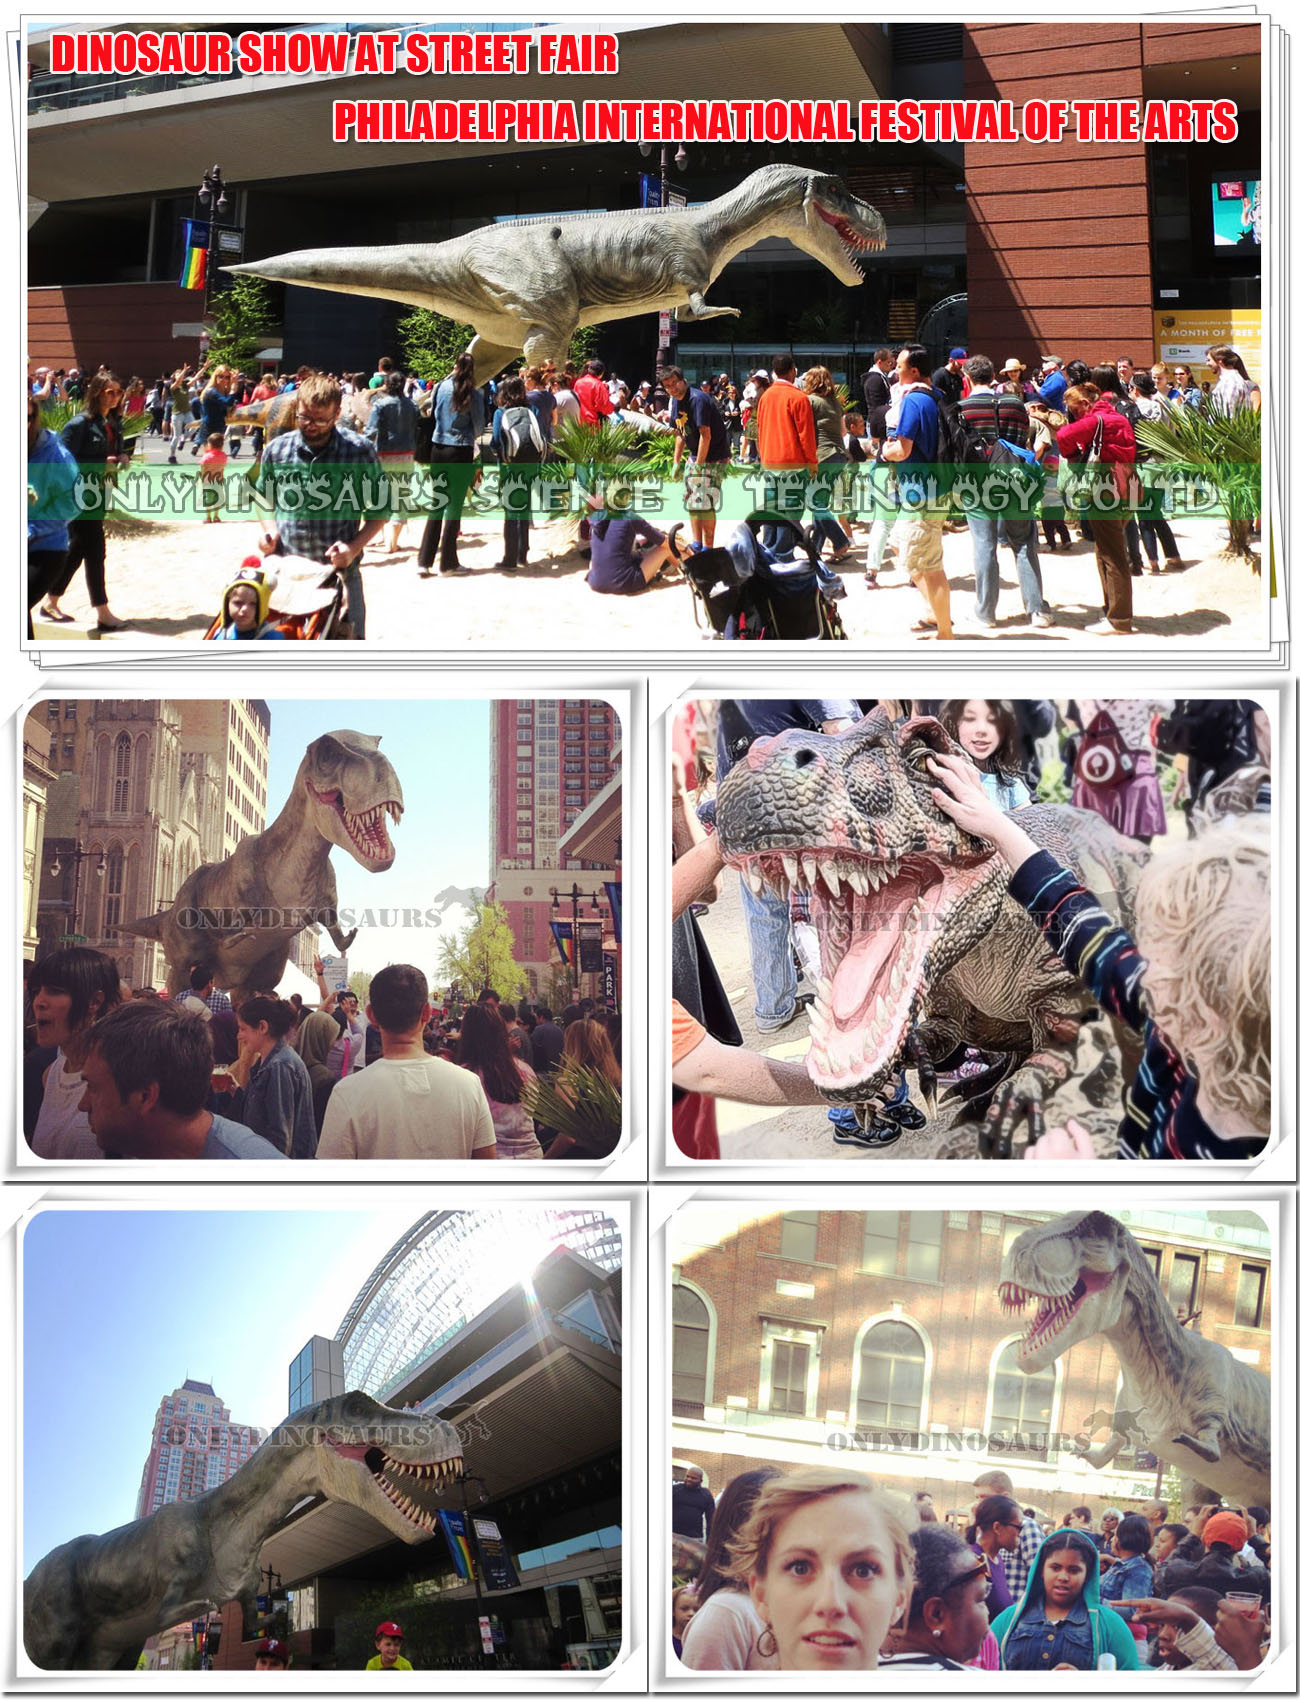 Dinosaur Show at Street Fair